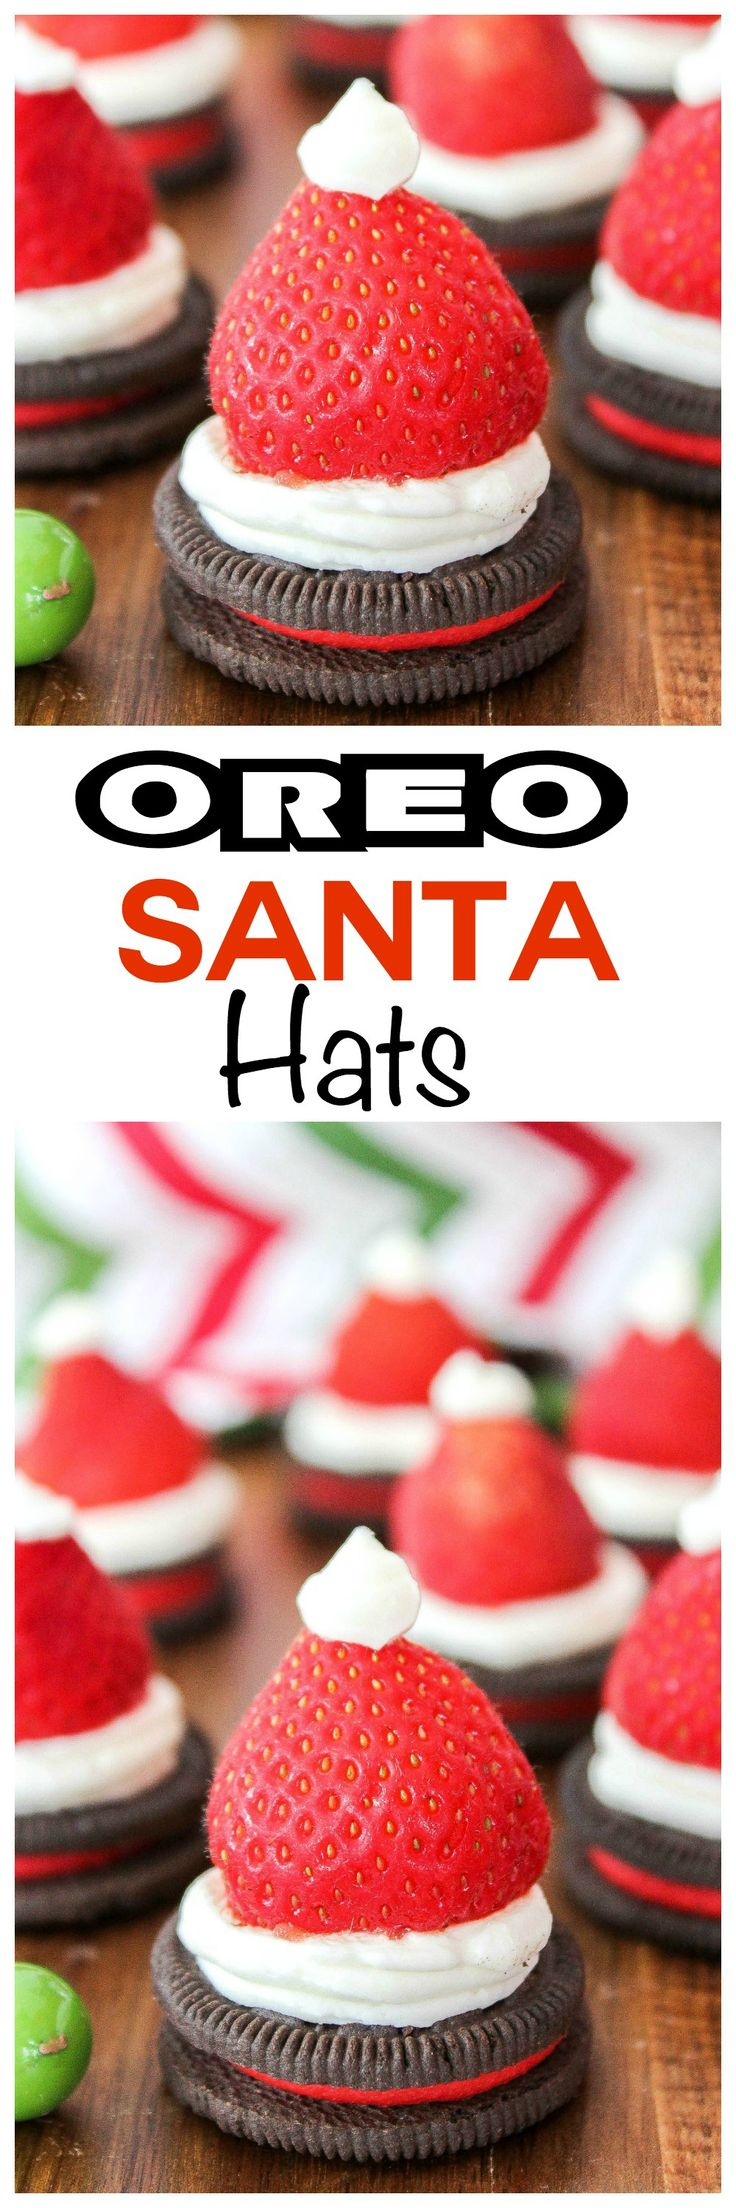 These Oreo Santa hats make a delicious dessert at any Christmas table. Oreo Santa hats are super festive and easy to make. Enjoy!